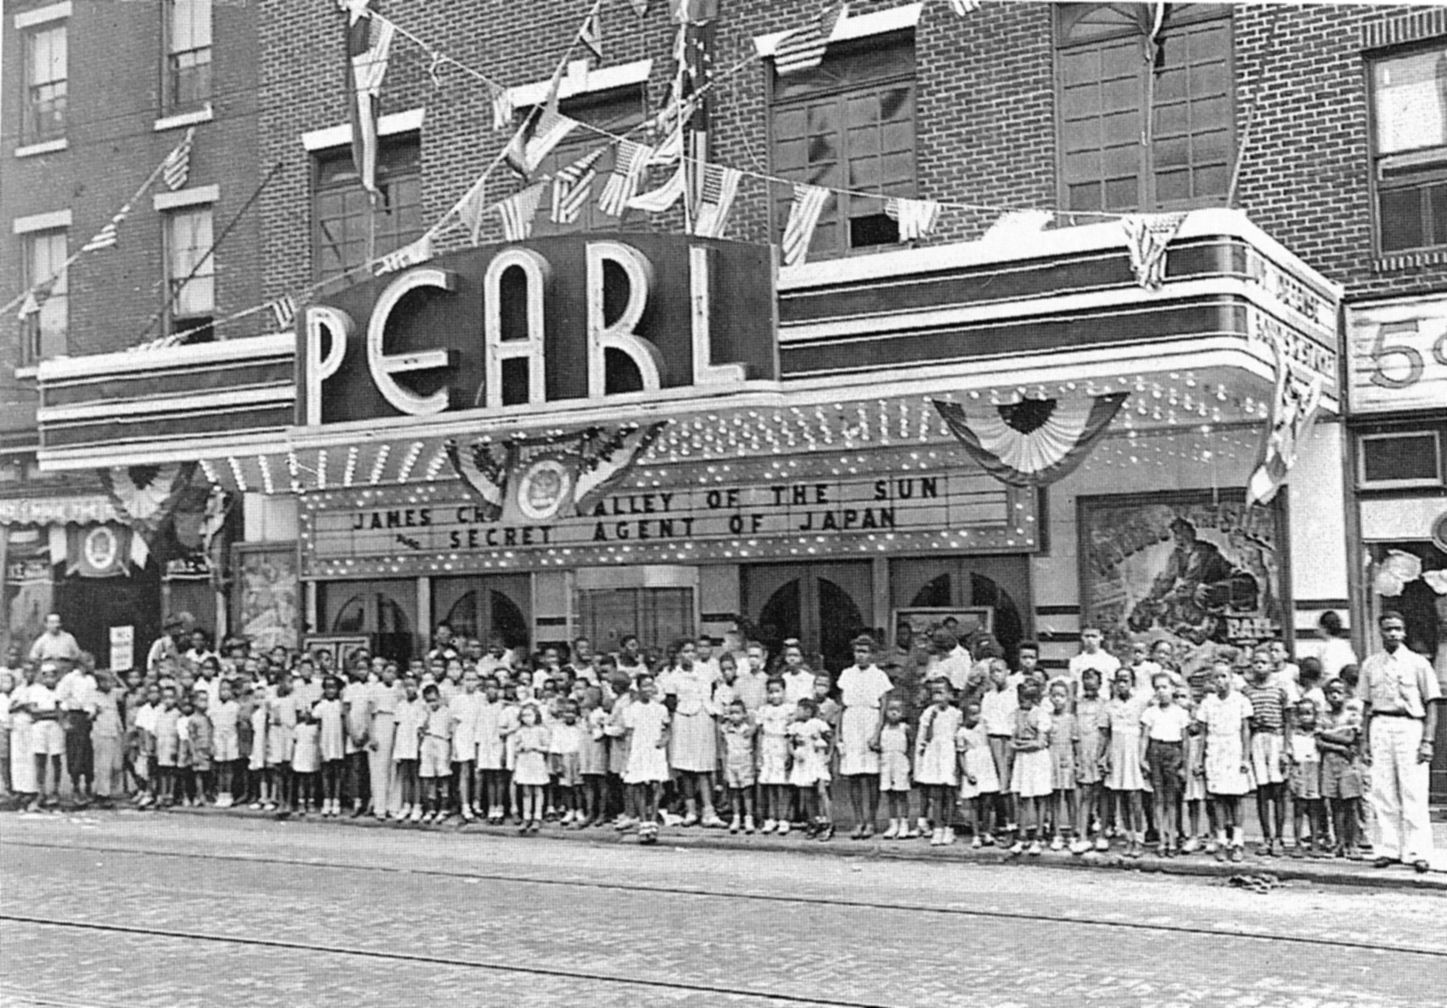 In The Early 1900s The Pearl Theater Located At Ridge